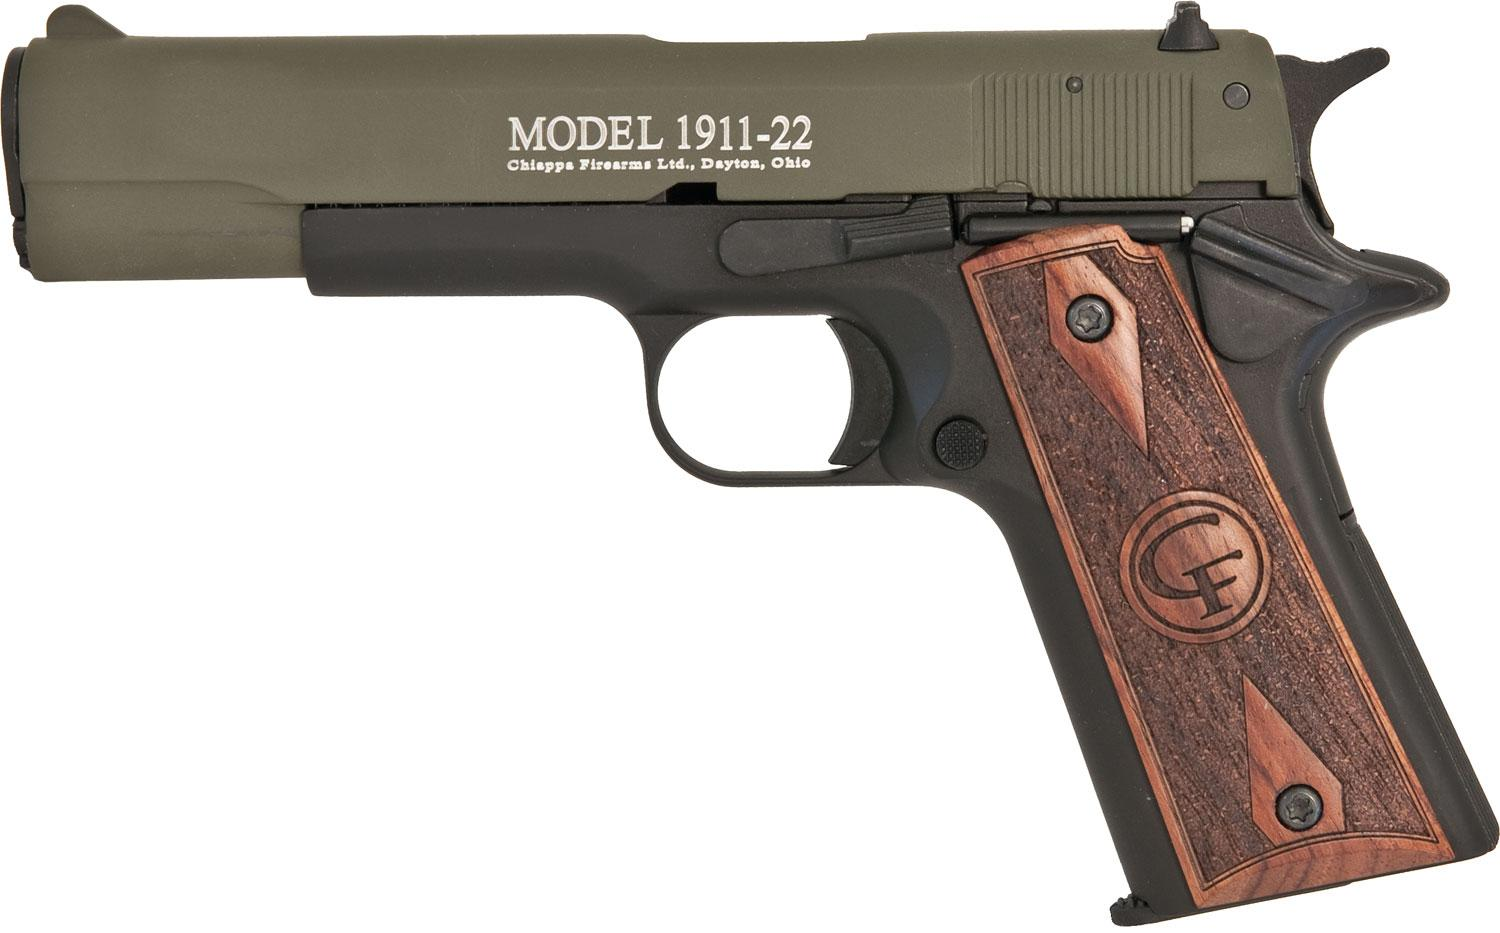 Chiappa 1911 Standard Pistol 401121, 22 Long Rifle, 5 inch, Hogue Rubber  Grip, OD Green Finish, 10 Rd - Able Ammo